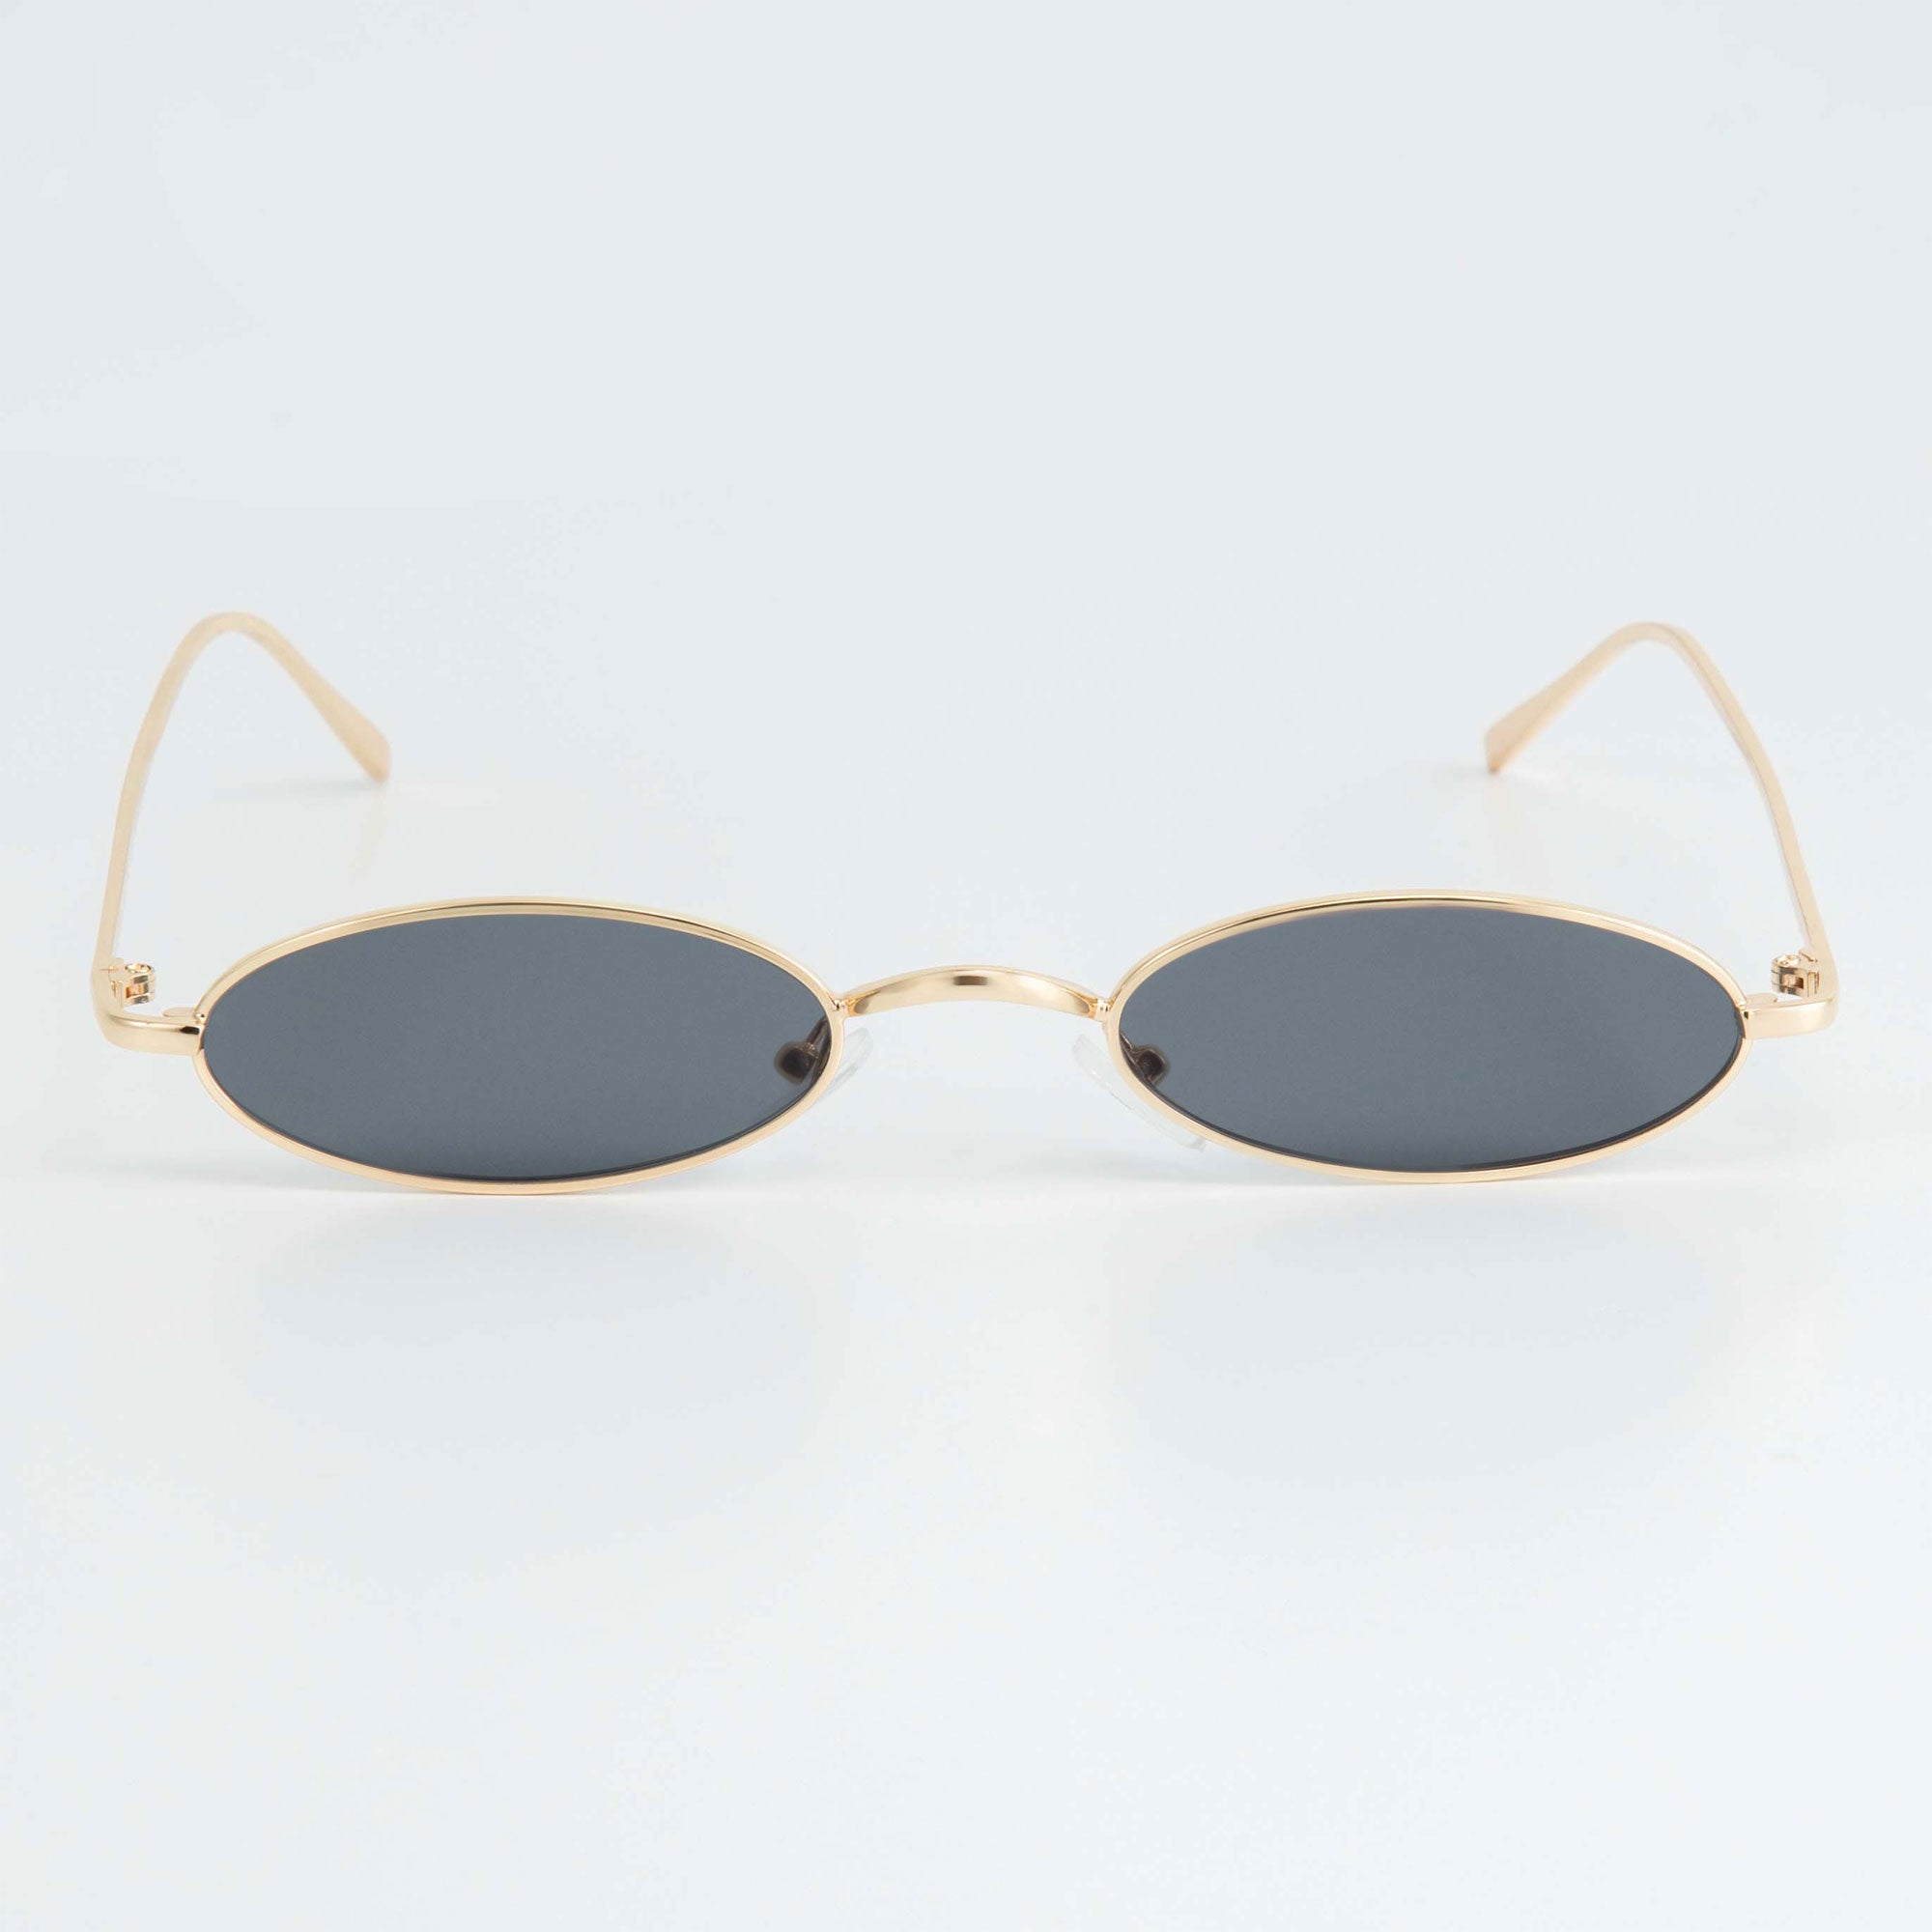 SLIM RAVE SUNGLASSES INCL. CHAIN - BLACK / GOLD